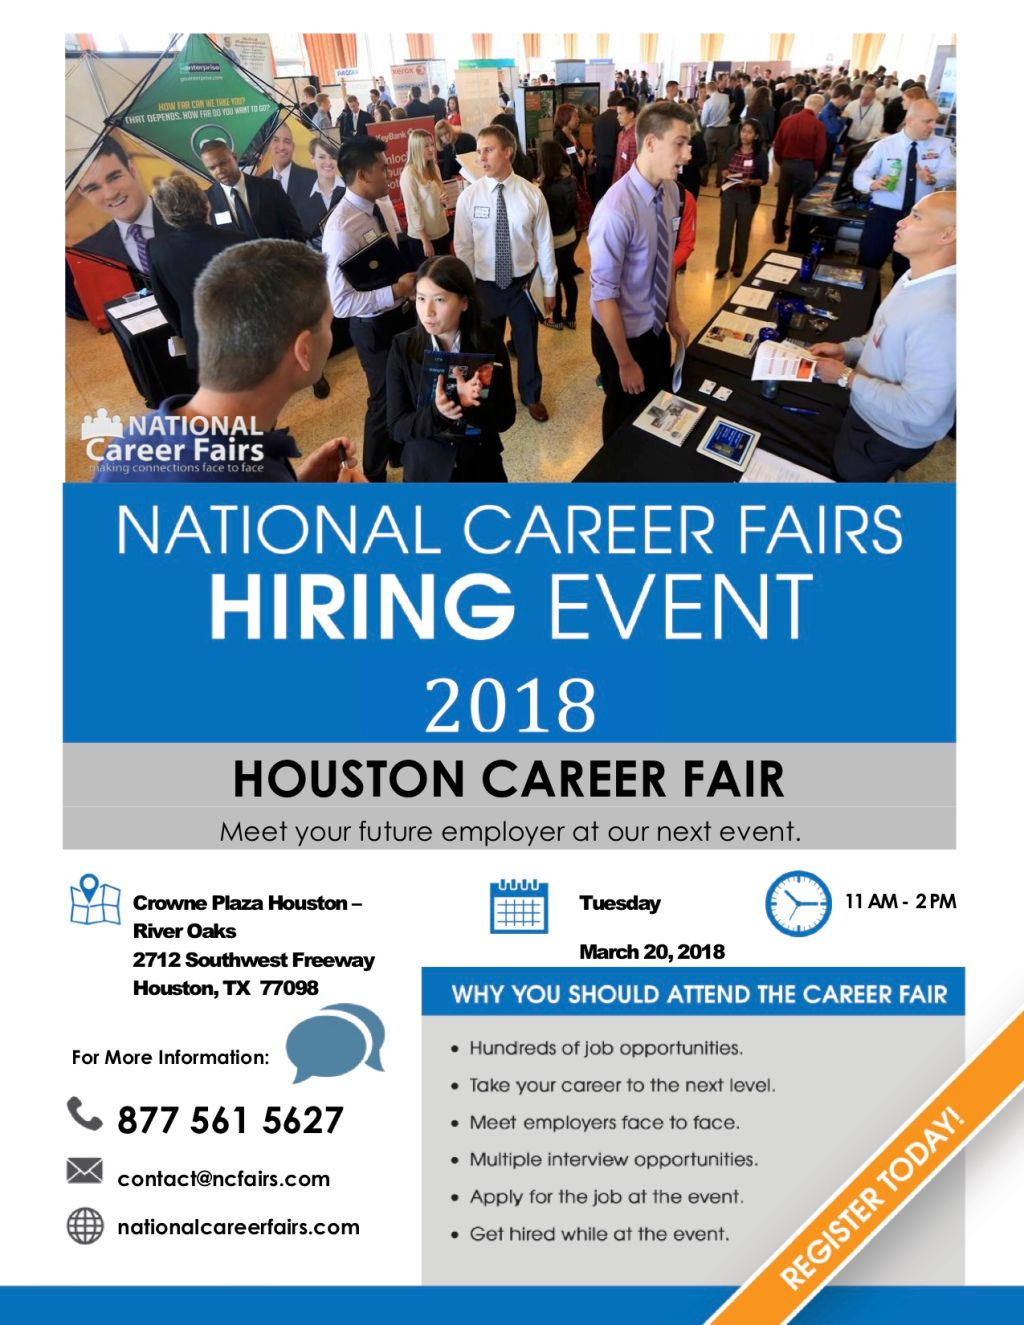 National Career Fairs Houston Hiring Event